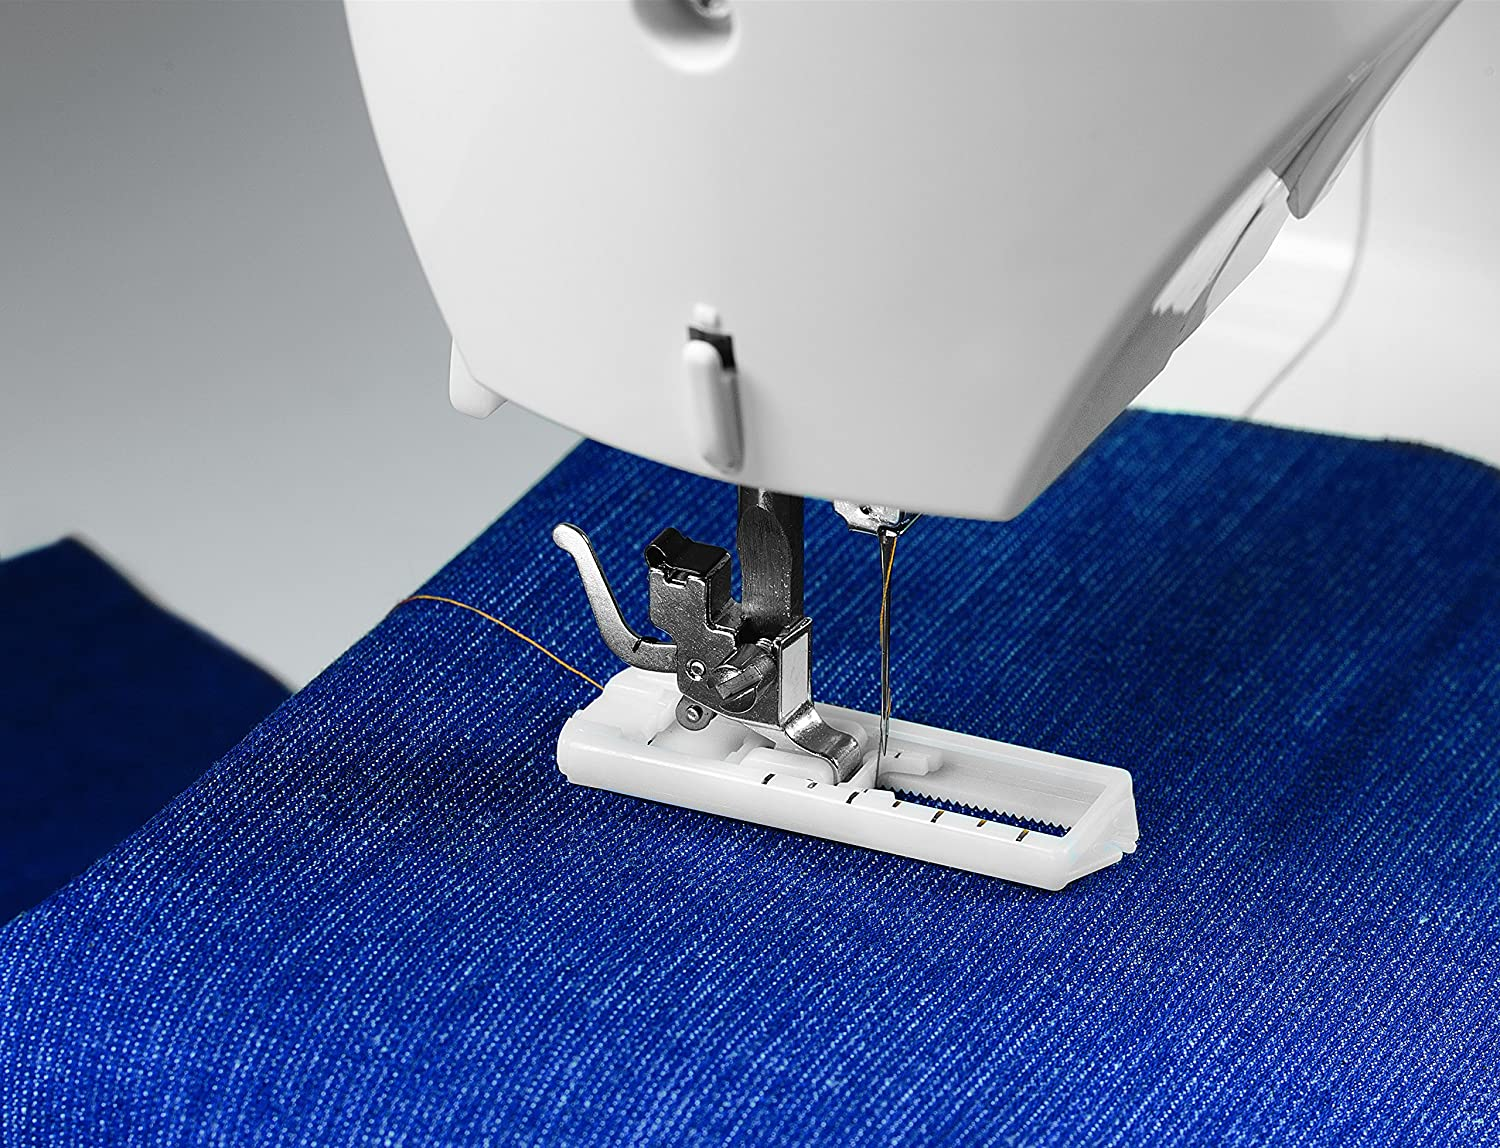 Singer Tradition 2250 Sewing machine, White